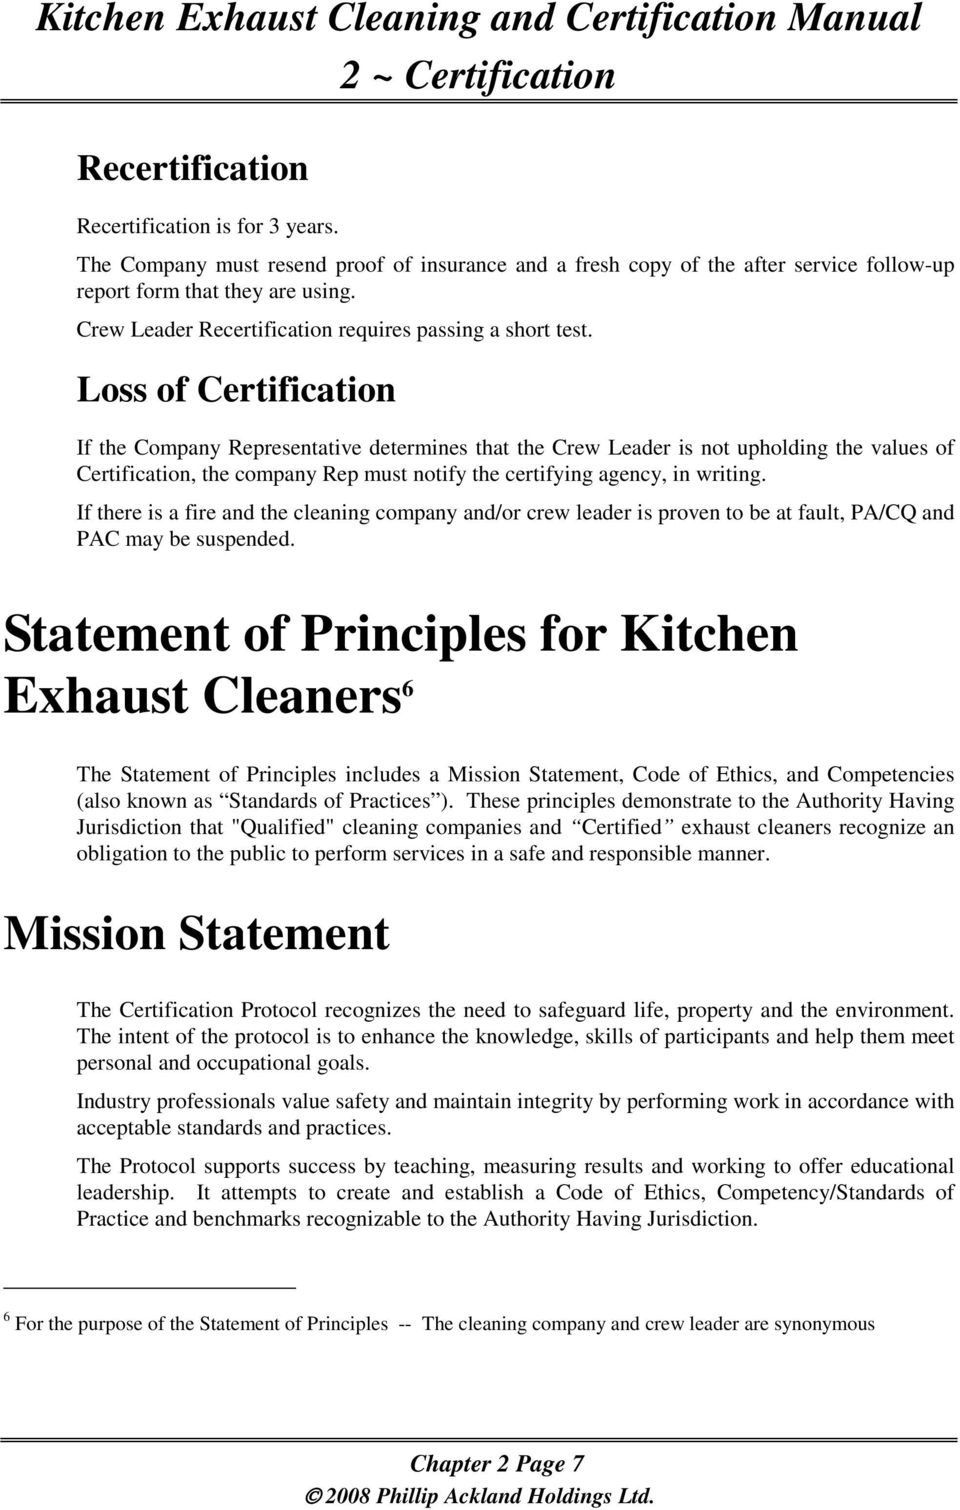 Certification Kitchen Exhaust Cleaning And Certification Manual 2